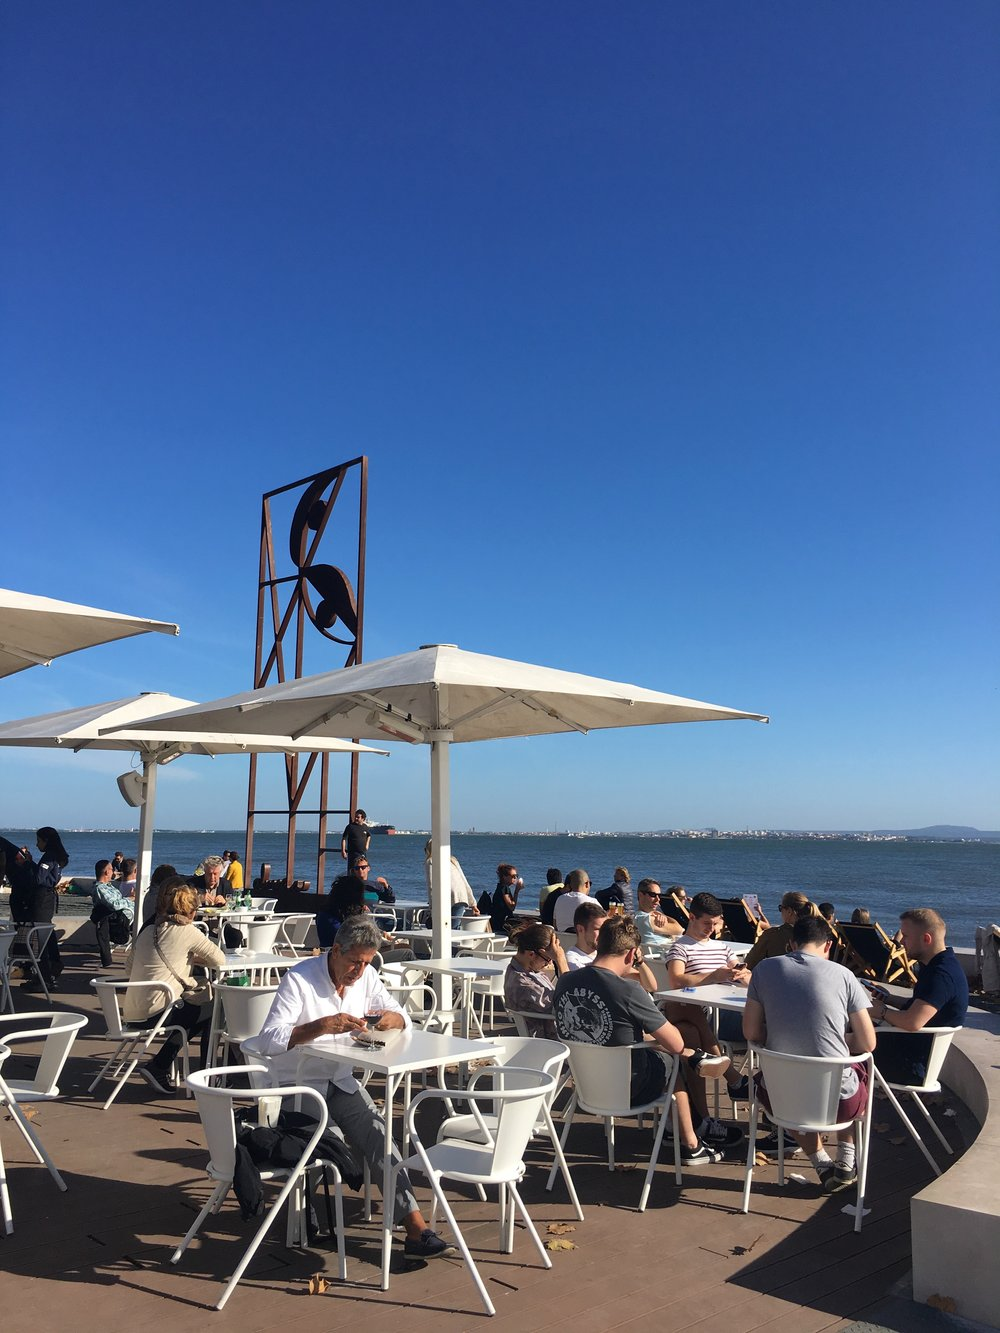 Quiosque Ribeira Das Naus / Lisbon eats + drinks travel guide | Soi 55 Travels